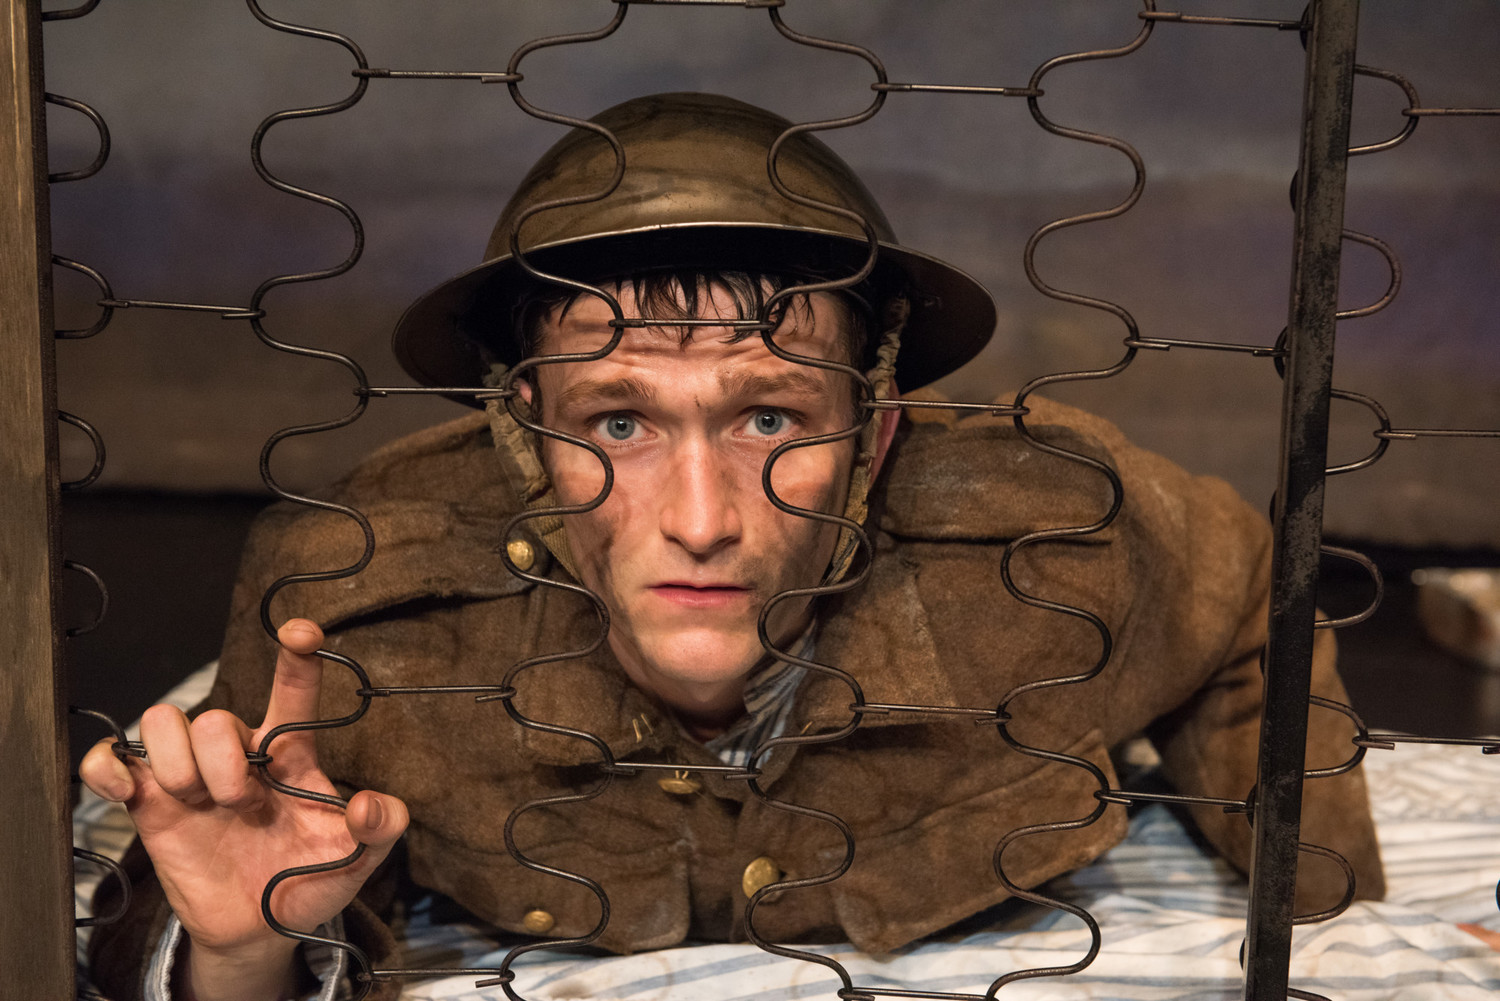 BWW Review: PRIVATE PEACEFUL at Greenhouse Theater, starring Shane O'Regan, offers a profound meditation on war through the eyes of youth